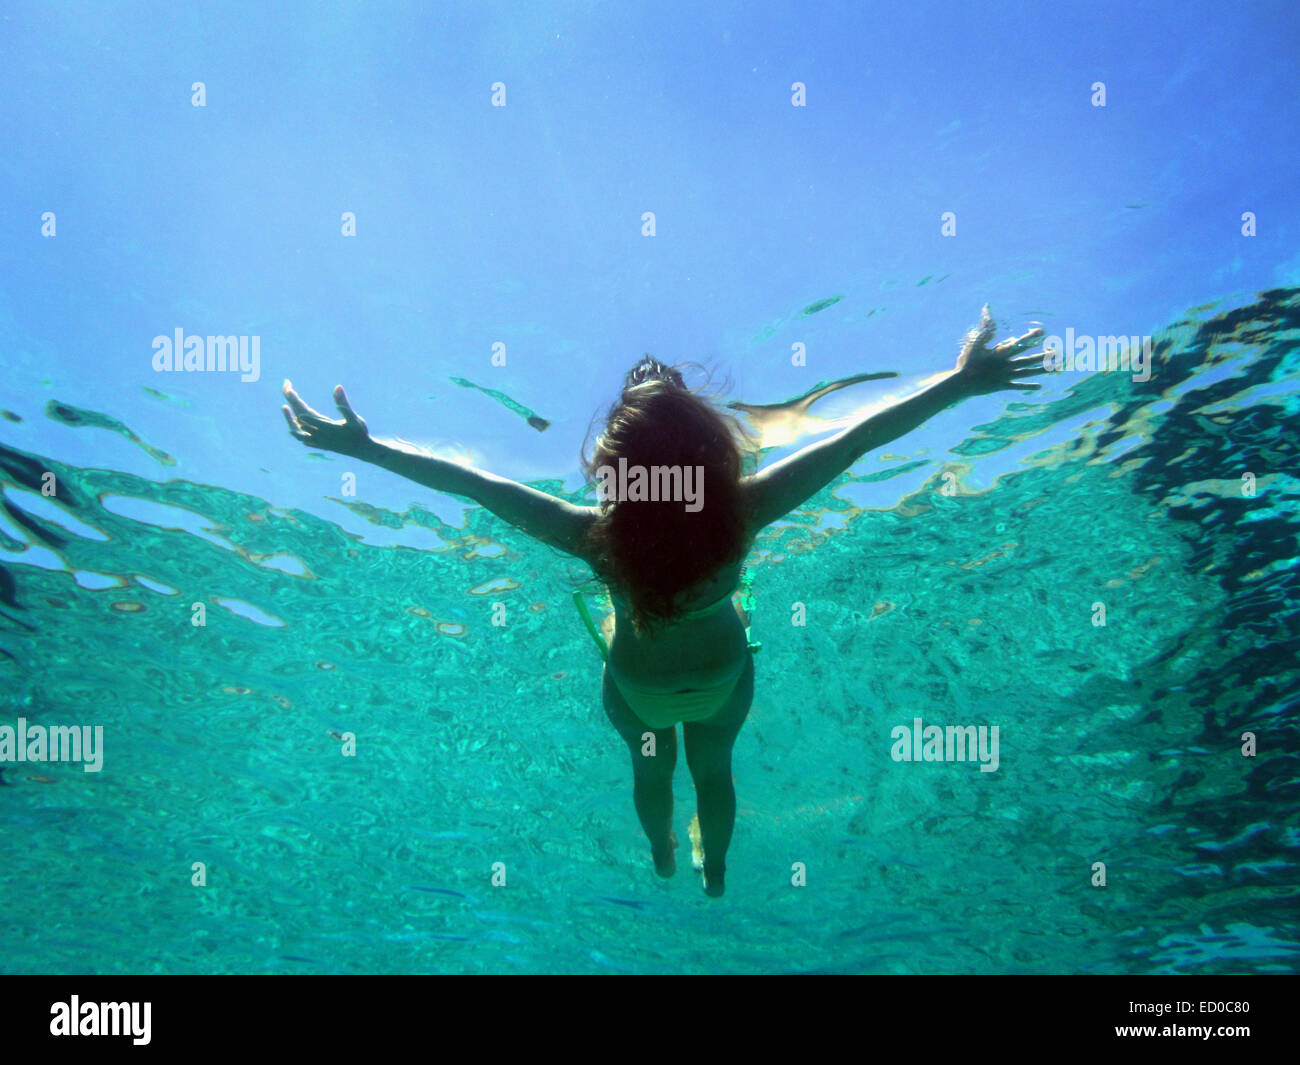 Greece, Dodecanese Prefecture, Chalki, Underwater view of woman floating on water Stock Photo